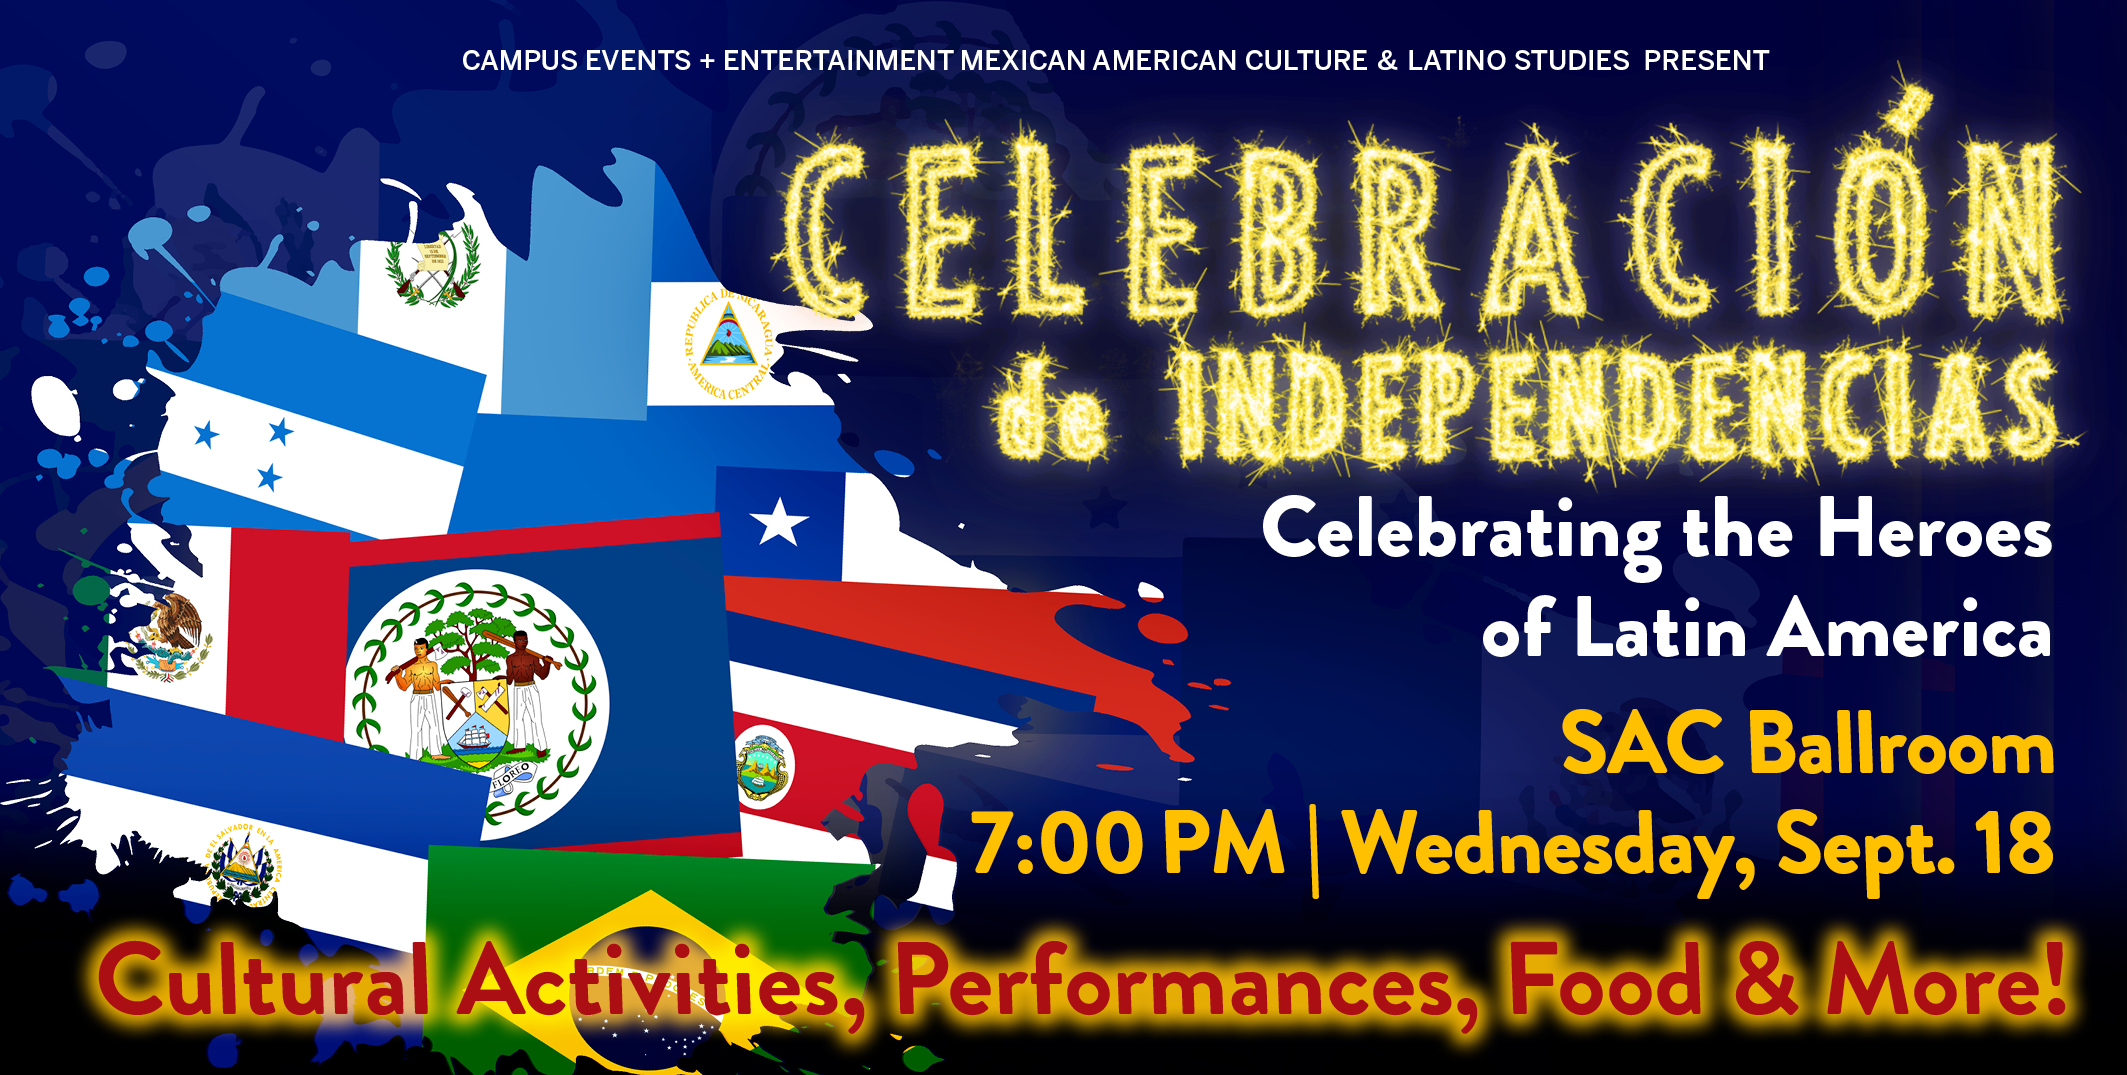 Celebracion de Independencias in the Student Activity Center Ballroom on Wednesday September 18, 2019 starting at 7 pm.